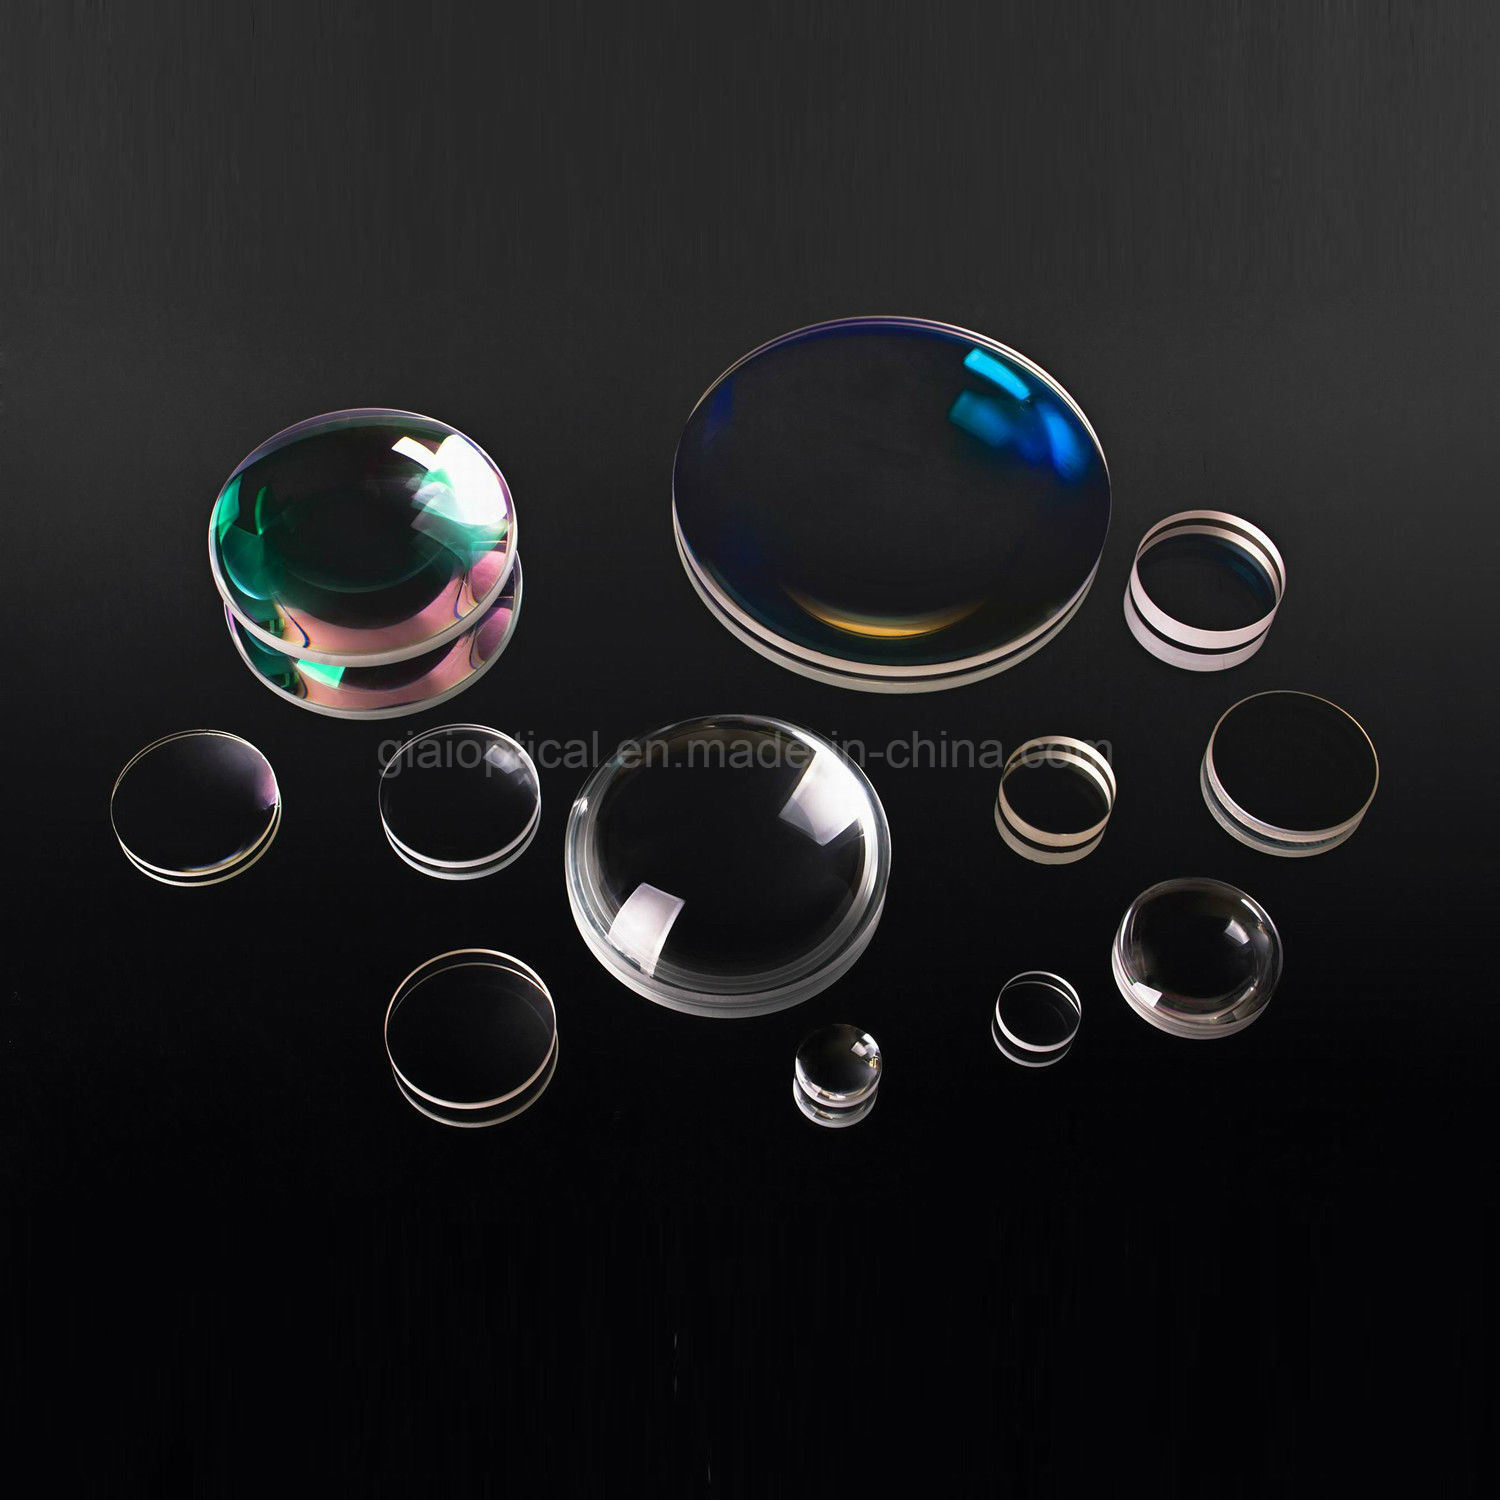 Giai Customize Coated Plano Convex Biconcave Biconvex Optical Lens Prototype